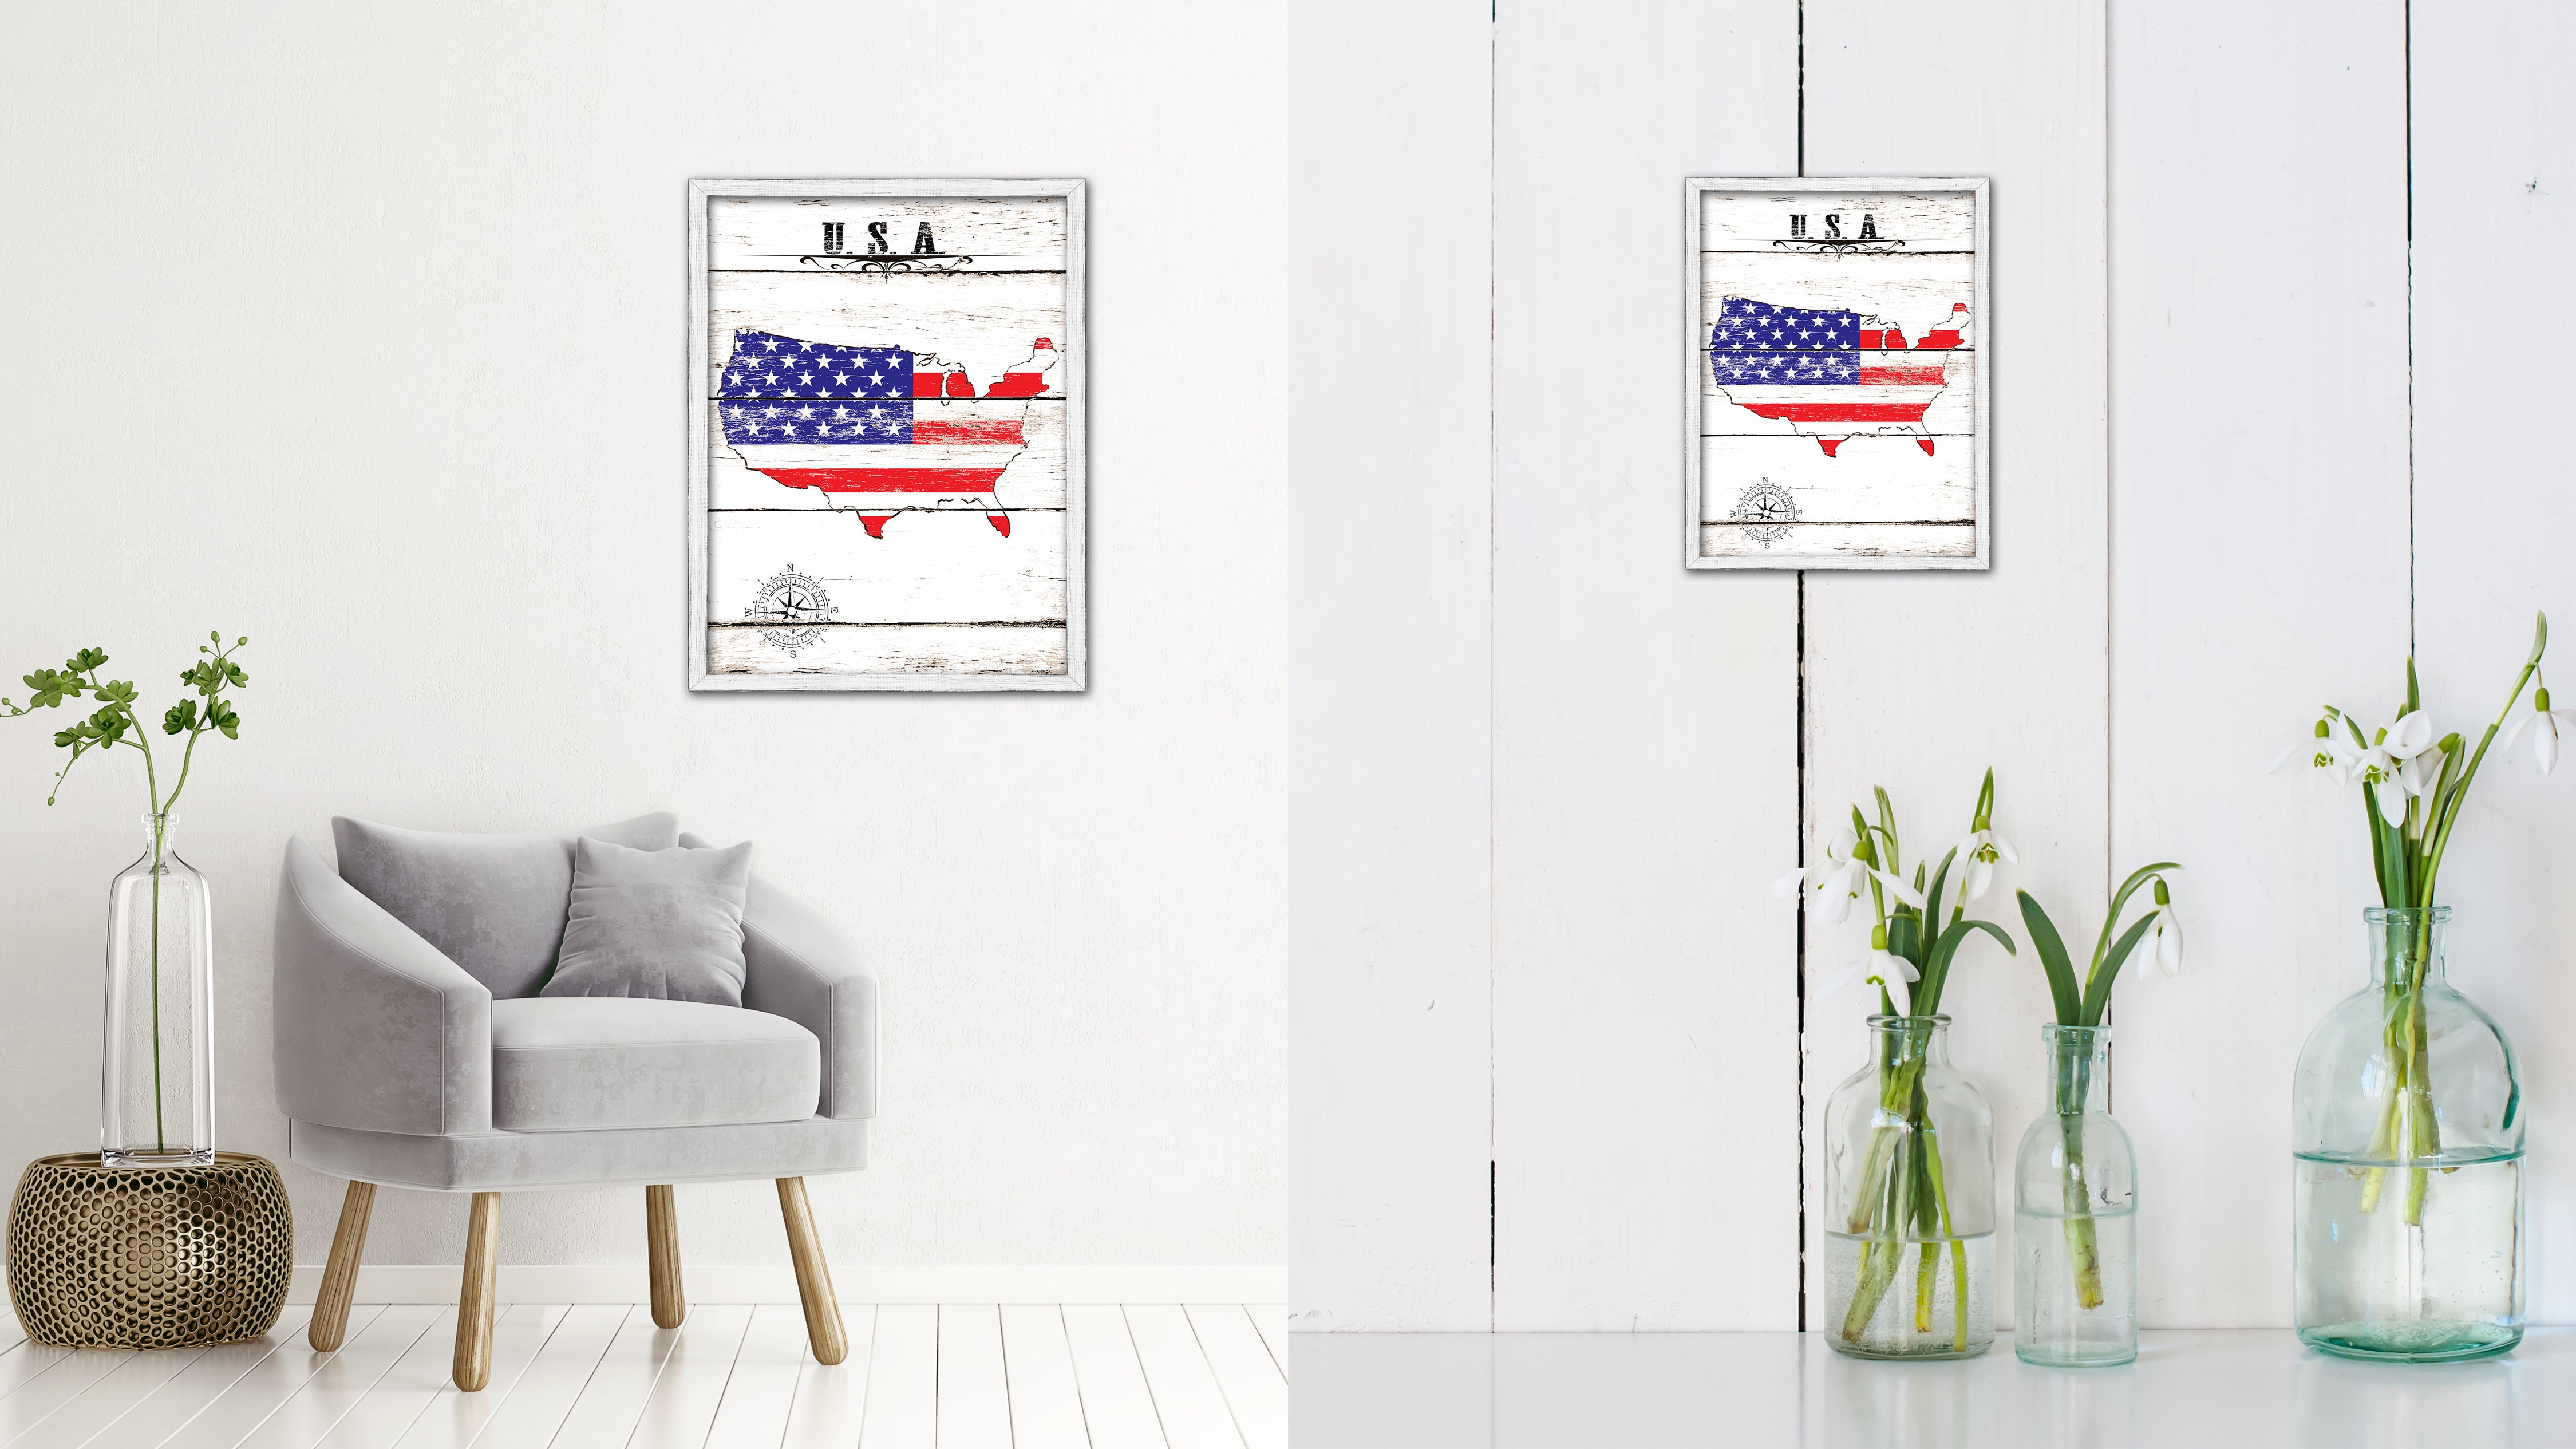 USA Flag Gifts Home Decor Wall Art Canvas Print With Custom Picture Frame